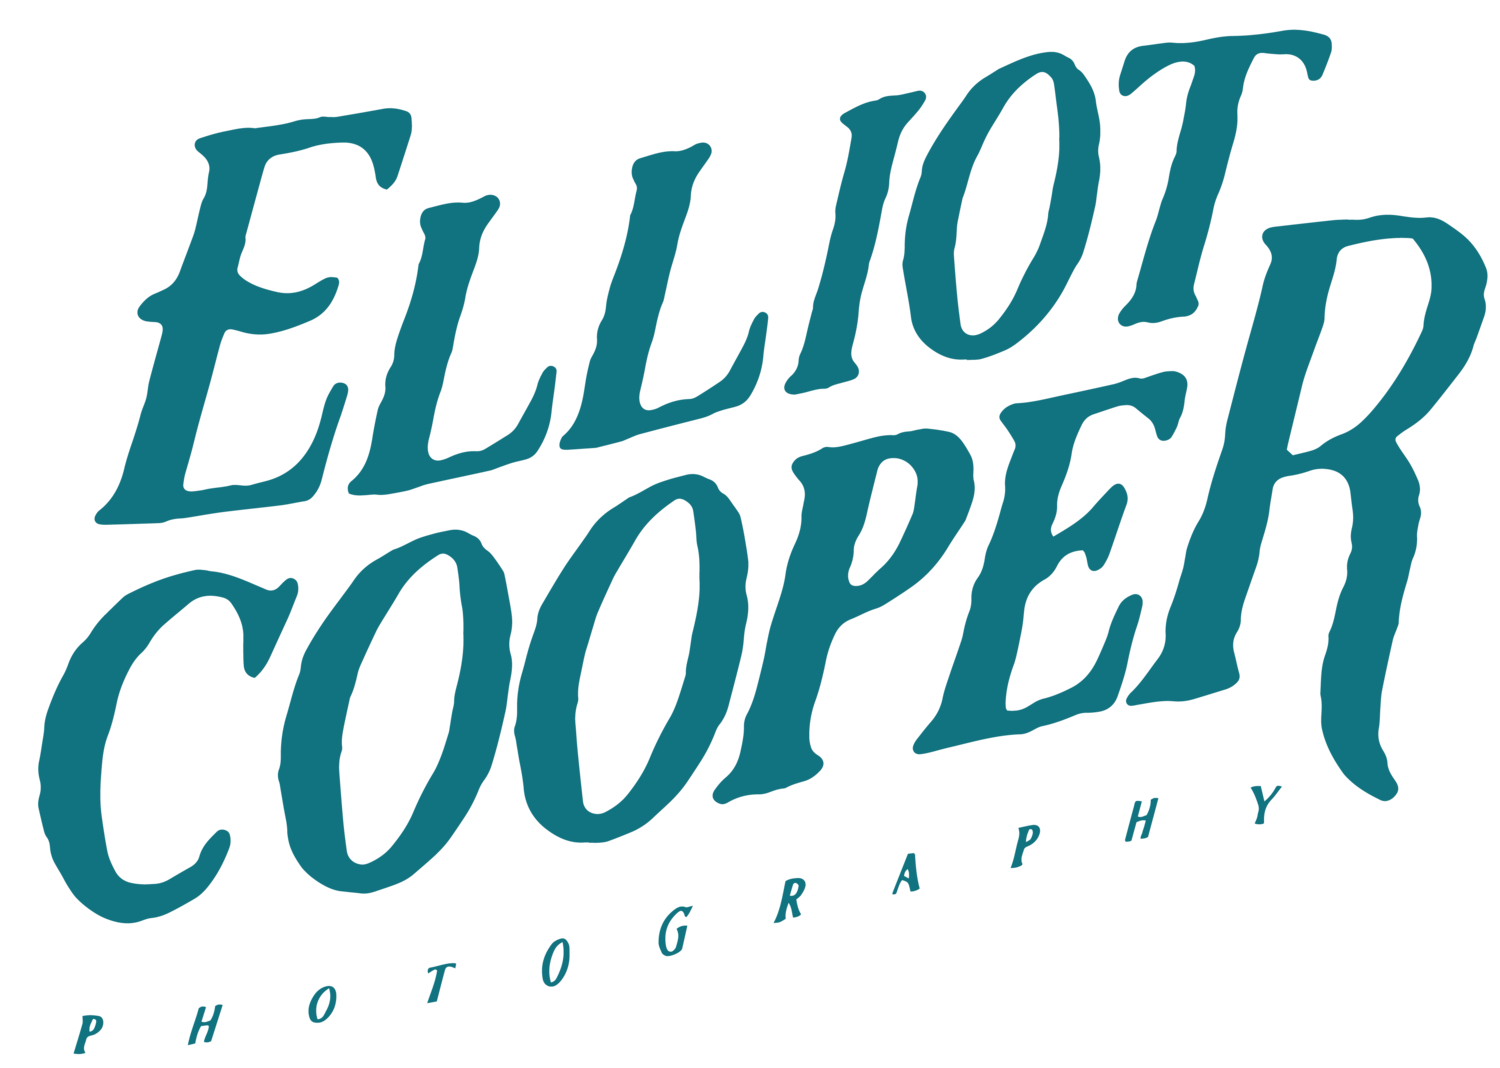 Elliot Cooper | Adventure / Travel Photographer